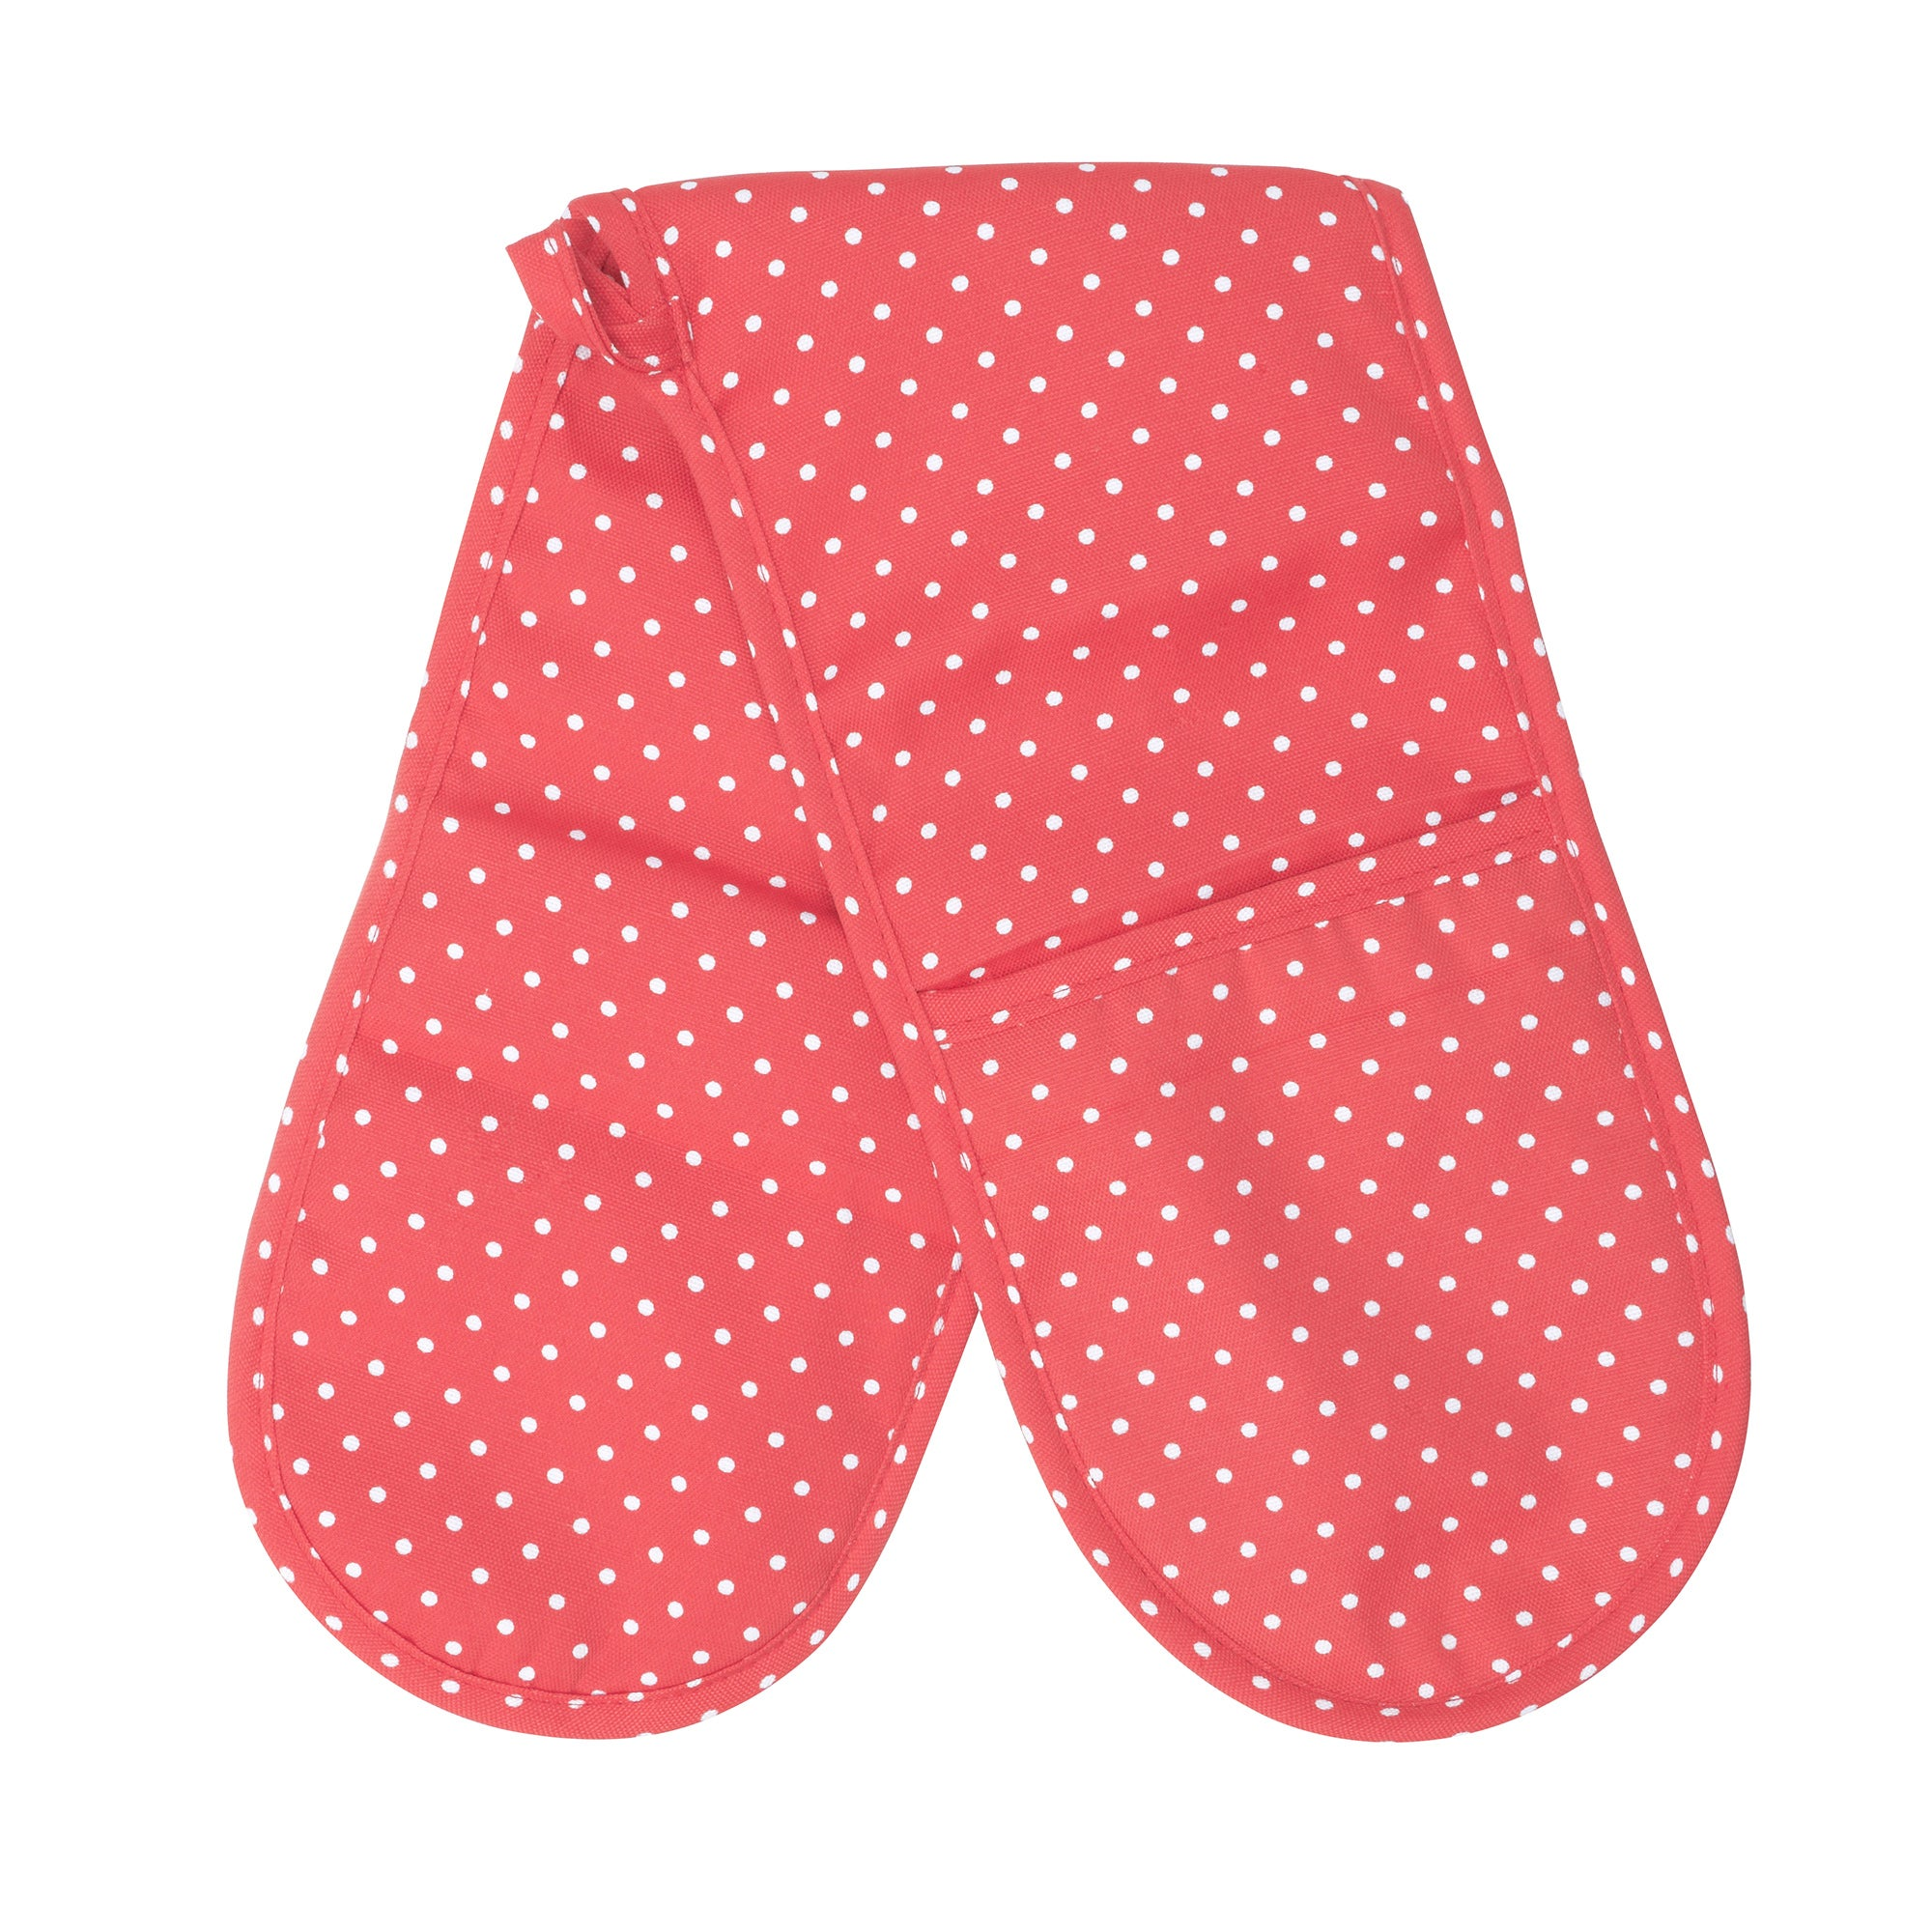 Orchard Collection Double Oven Glove